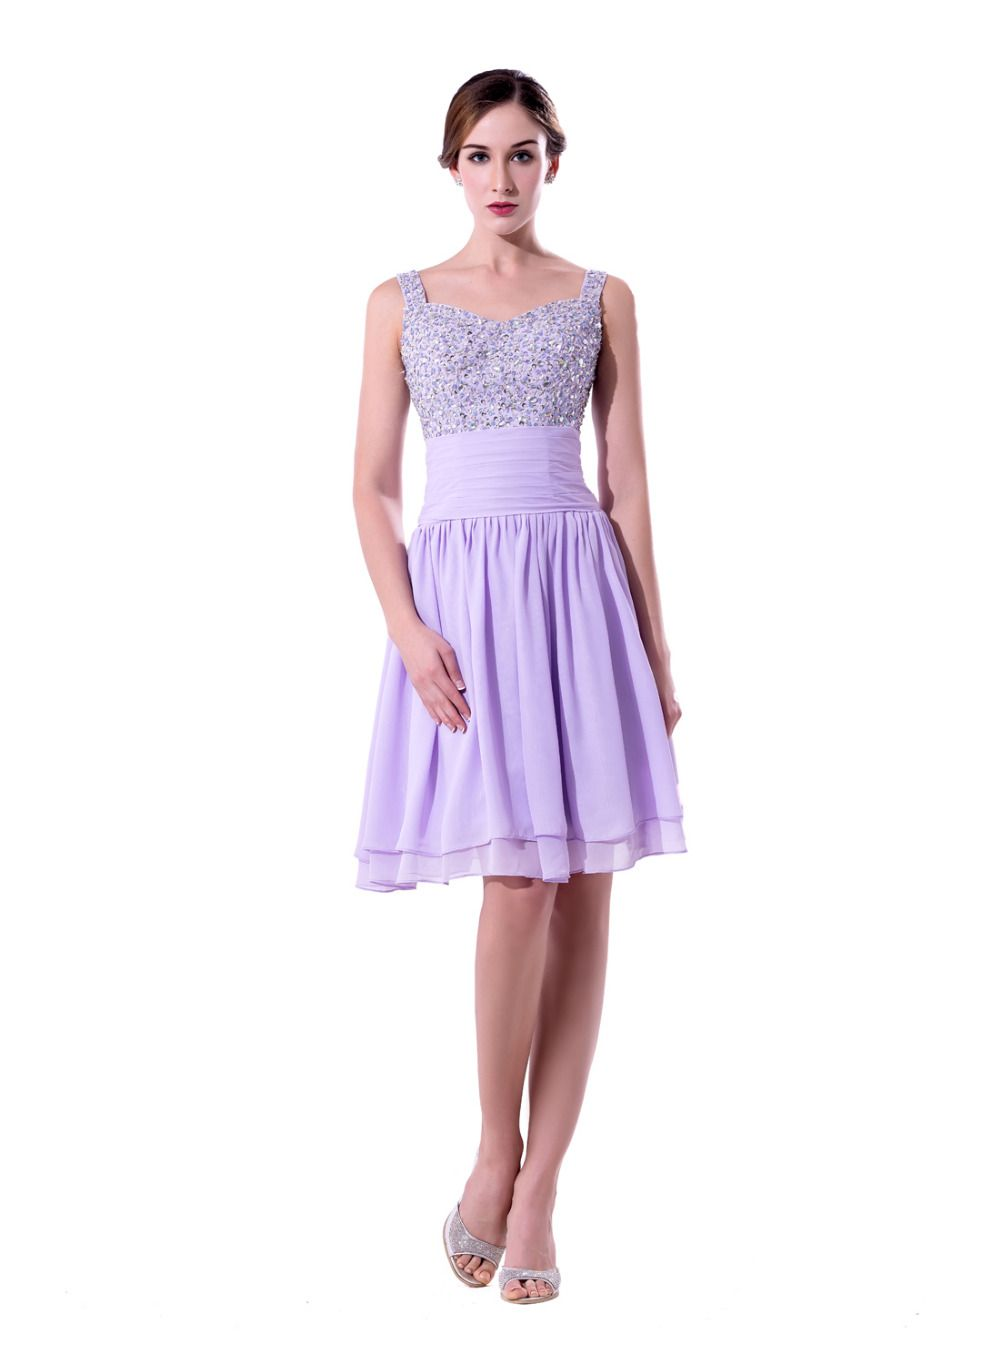 Click to buy 2017 new hot selling light purple short chiffon click to buy 2017 new hot selling light purple short chiffon bridesmaid ombrellifo Images